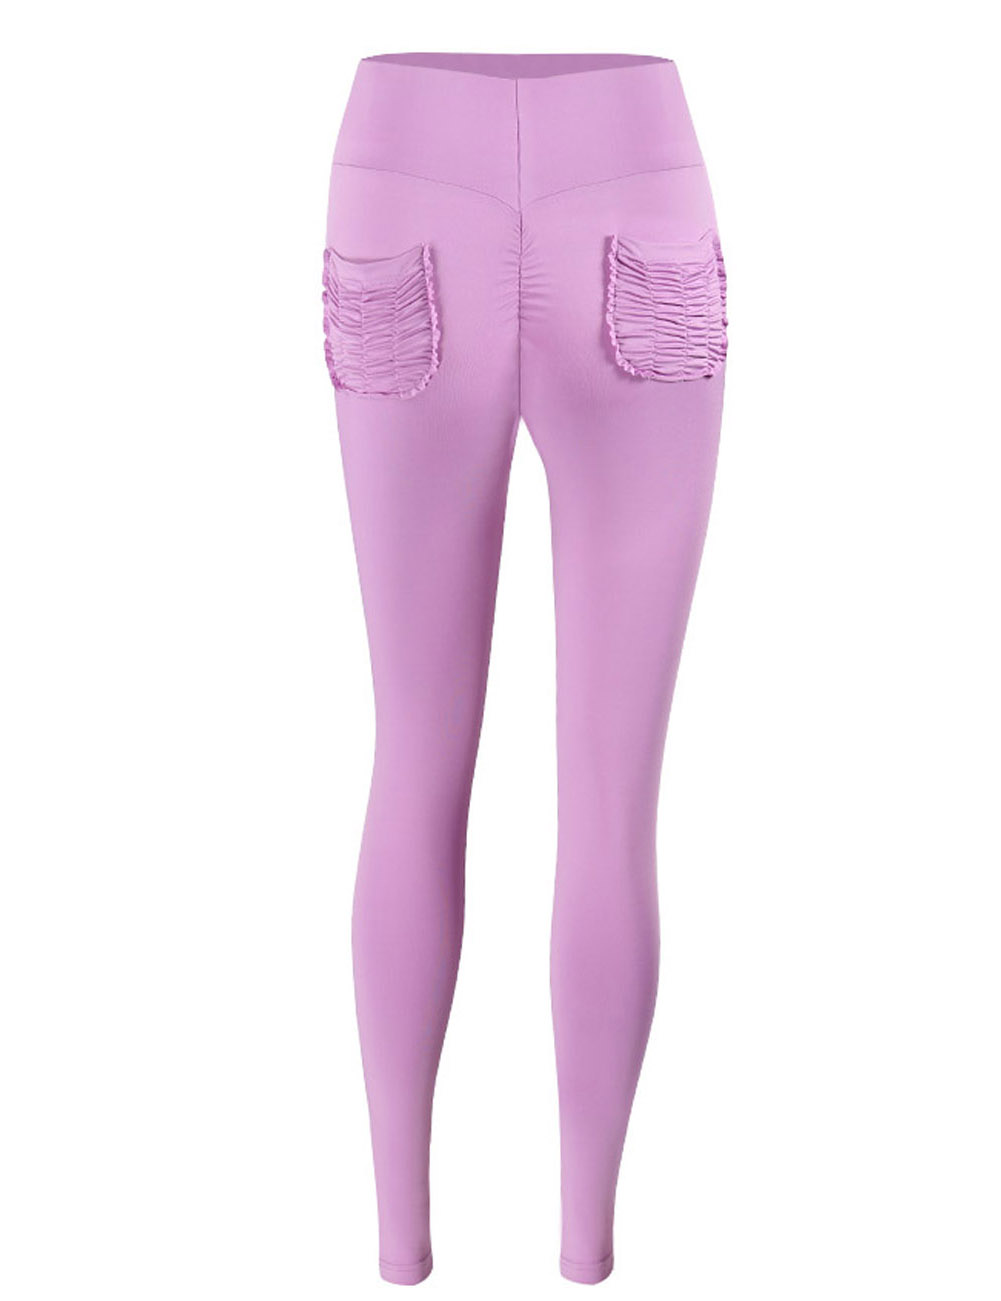 //cdn.affectcloud.com/hexinfashion/upload/imgs/Sportswear/Yoga_Legging/H180031PL01/H180031PL01-201911065dc2a922c5b1a.jpg